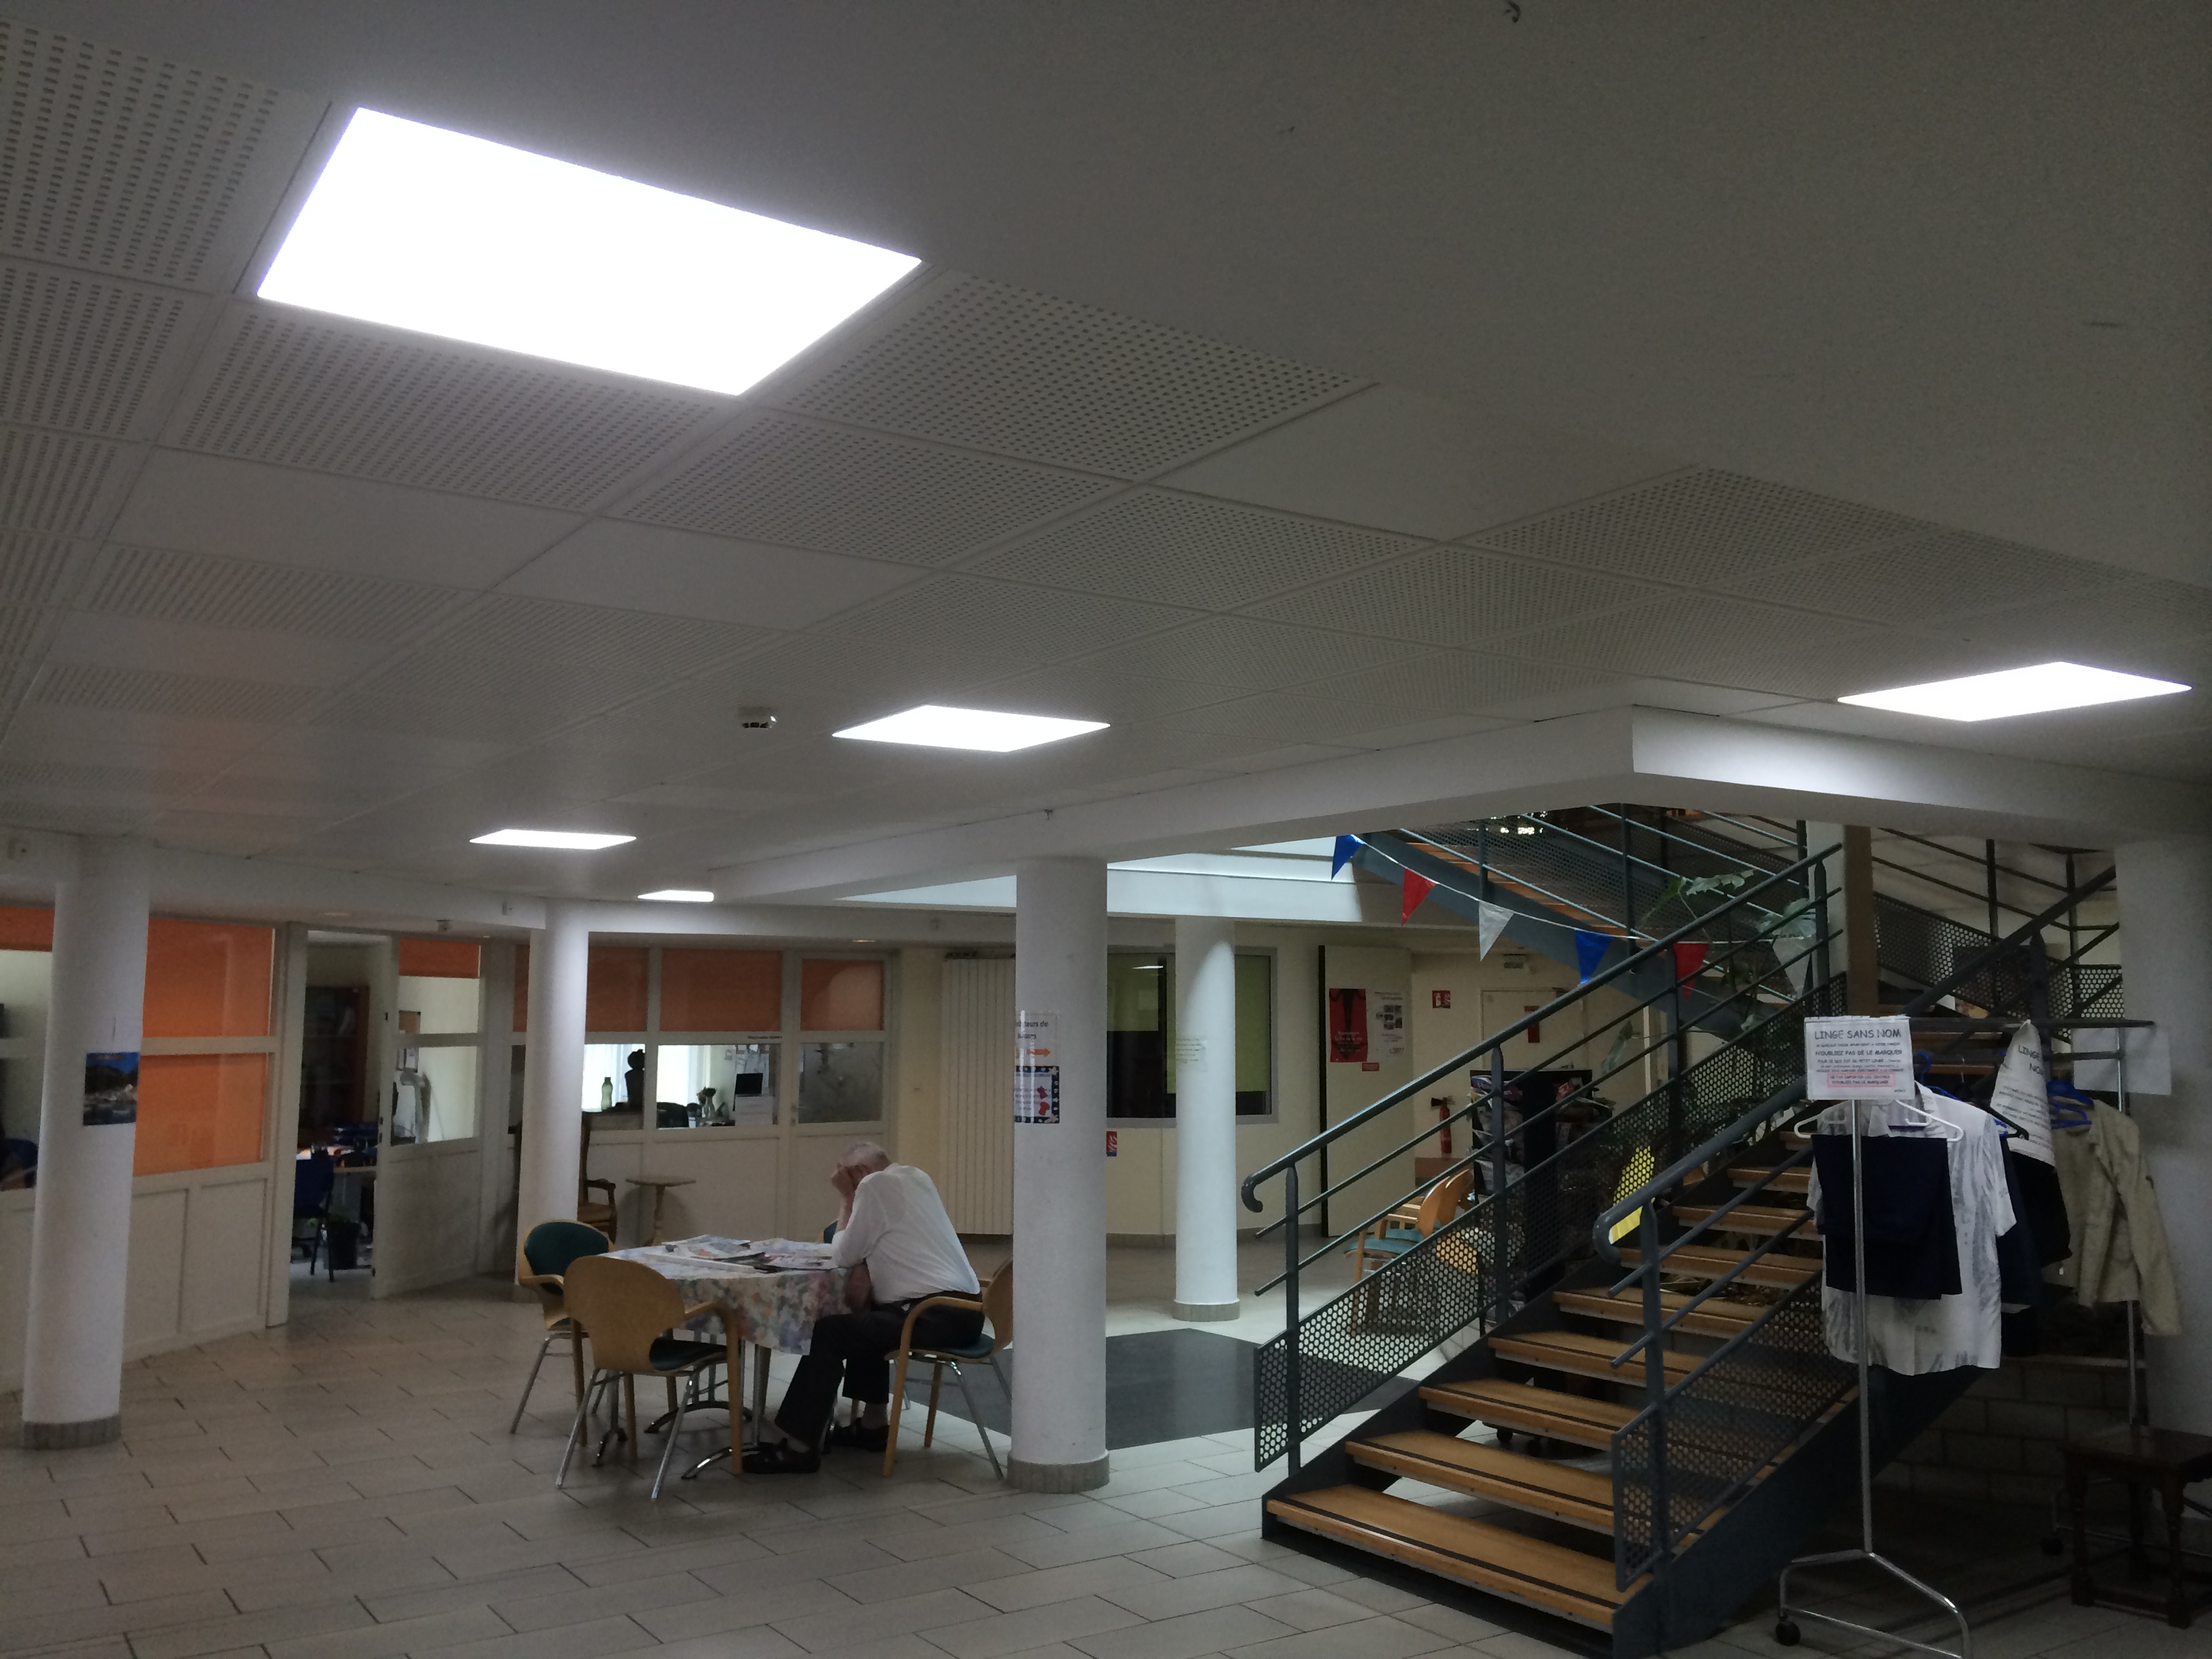 Eclairage Dalle Led Dalle Led Faux Plafond 60 X 60 40w 4500k